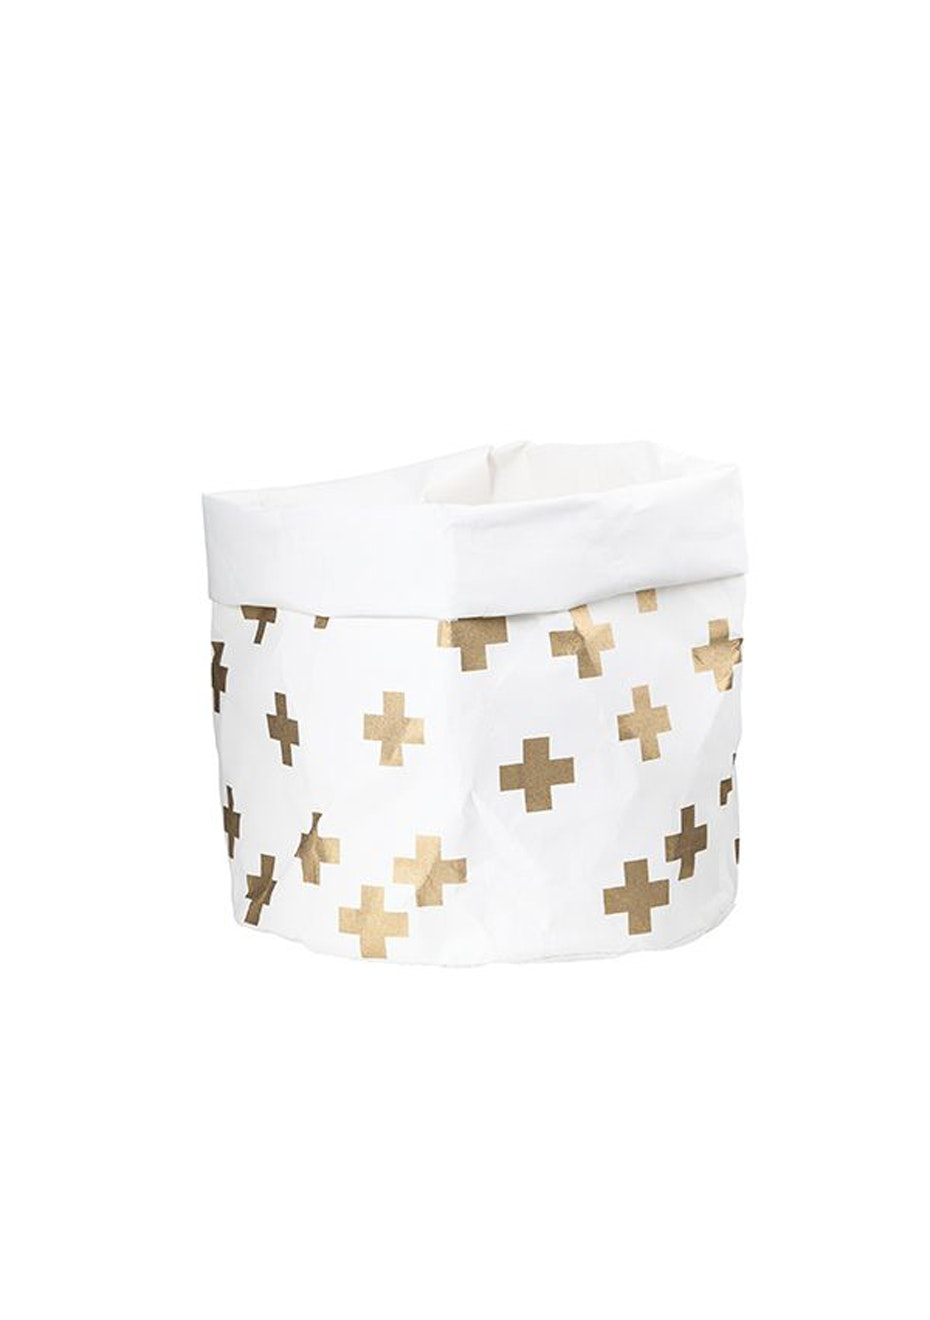 General Eclectic - Wash Paper Bag Large Gold Cross